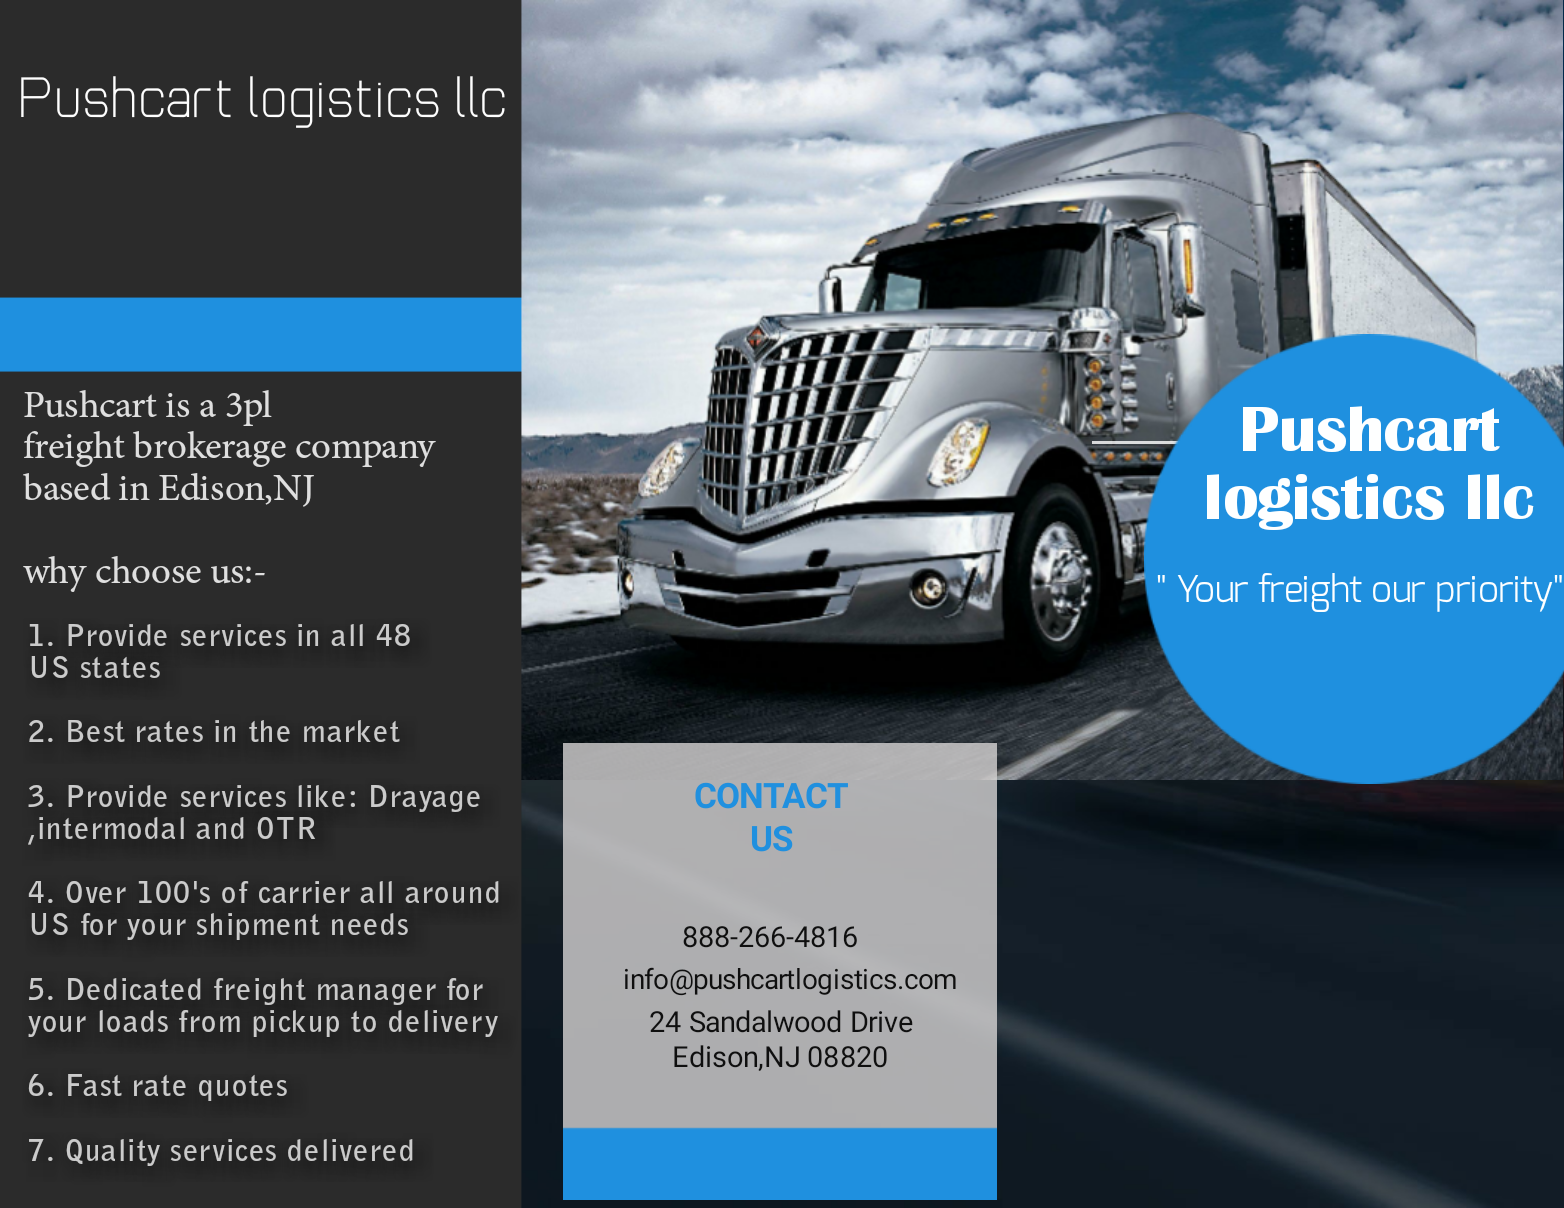 Trucking service in all 50 US states by Pushcart logistics